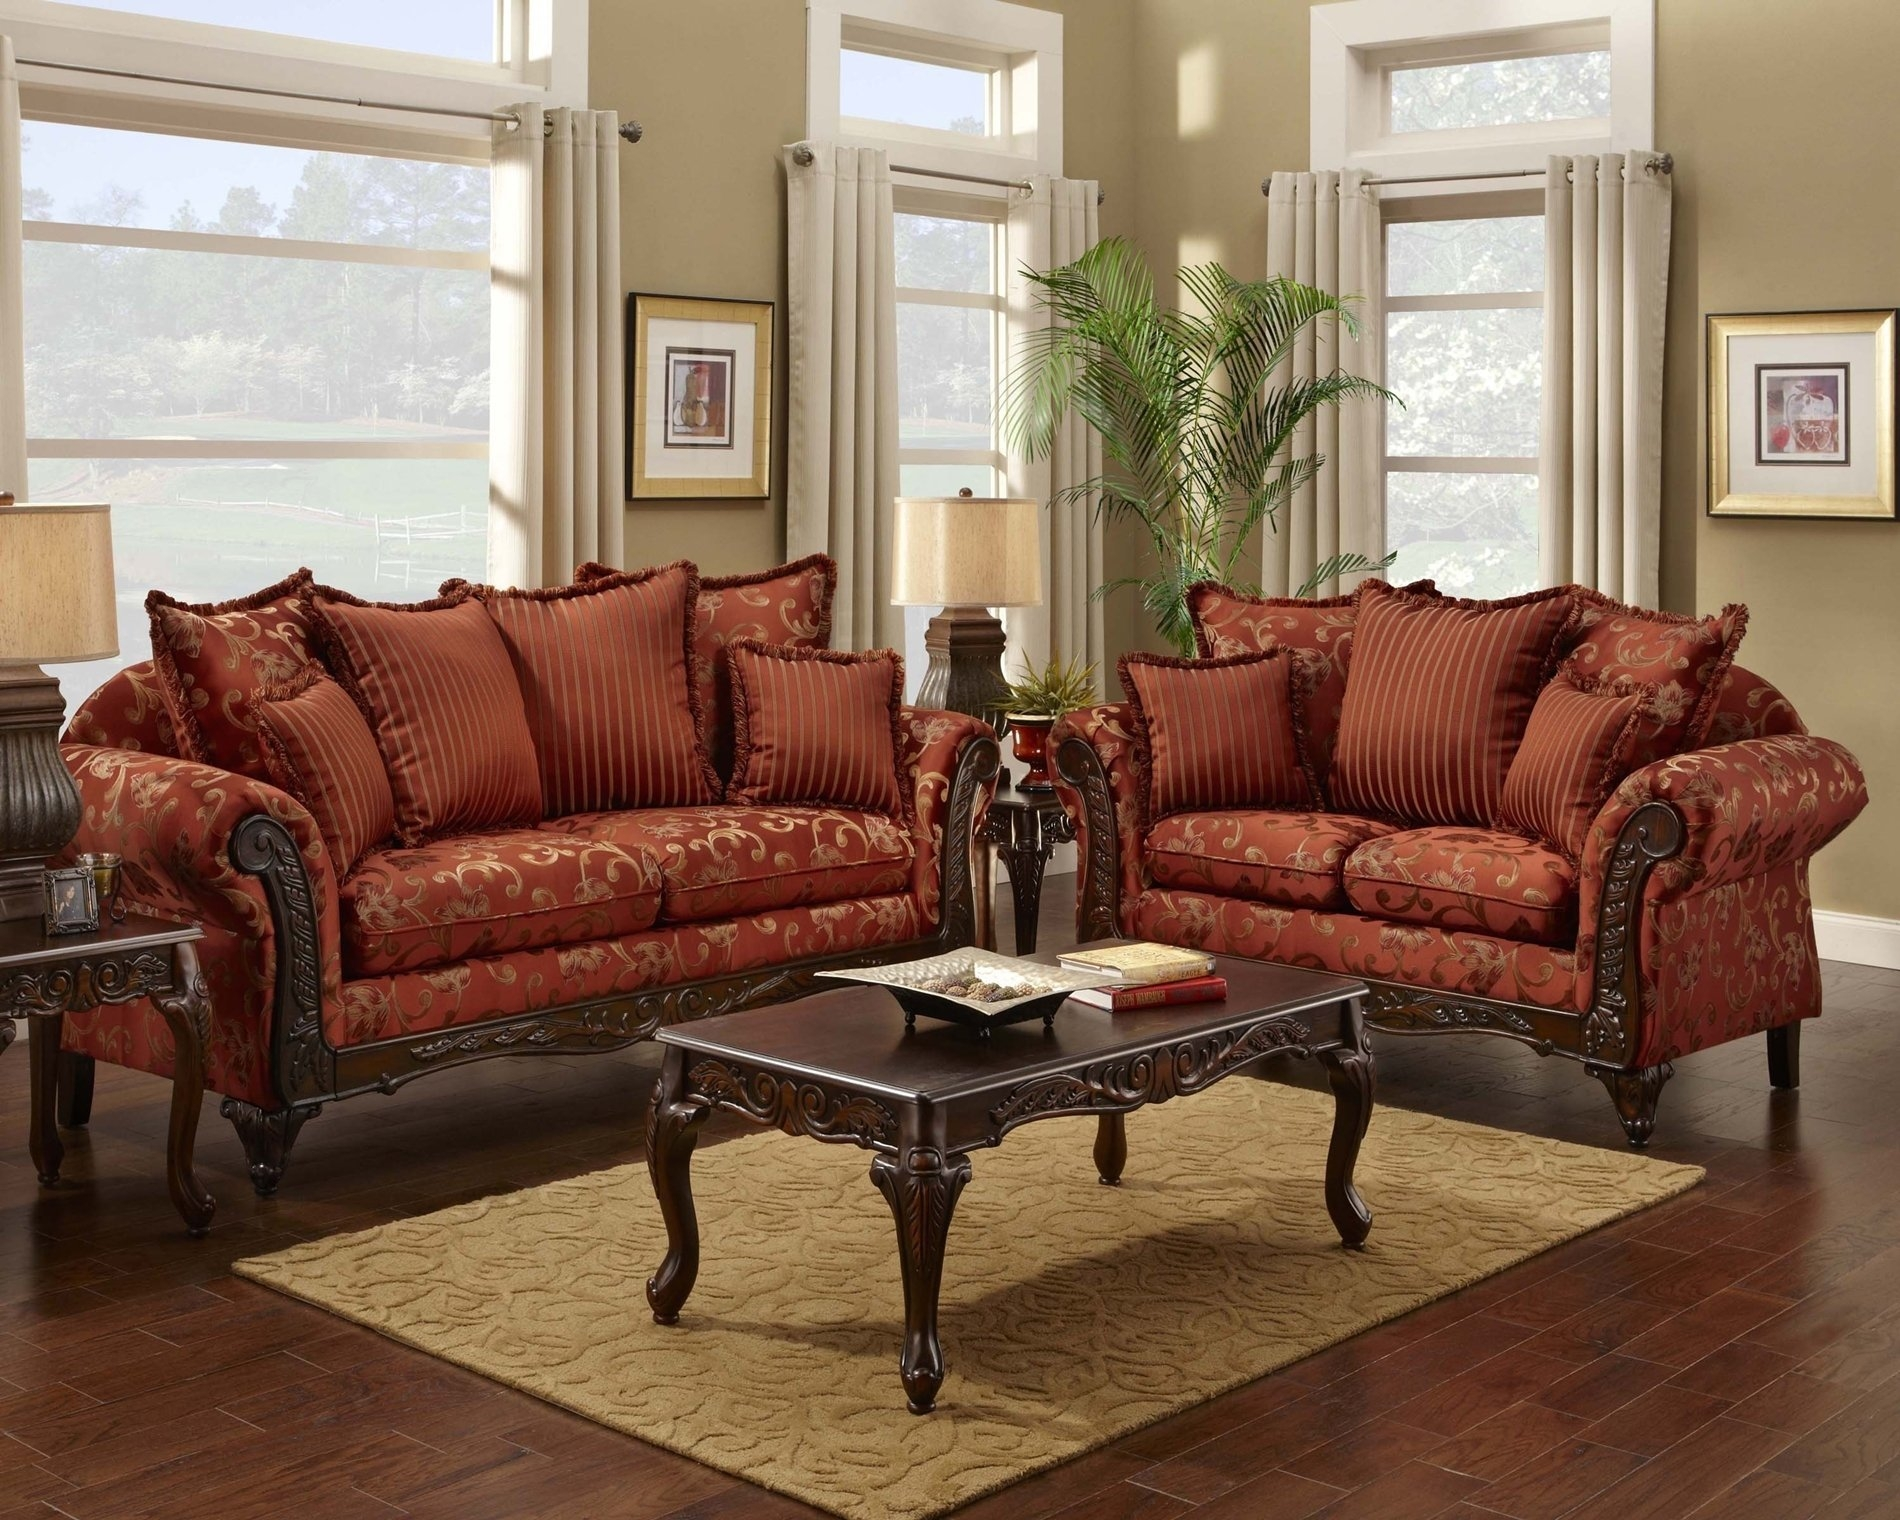 Red Floral Print Sofa And Loveseat Traditional Sofa Set For The With Regard To Floral Sofas And Chairs (Image 13 of 15)